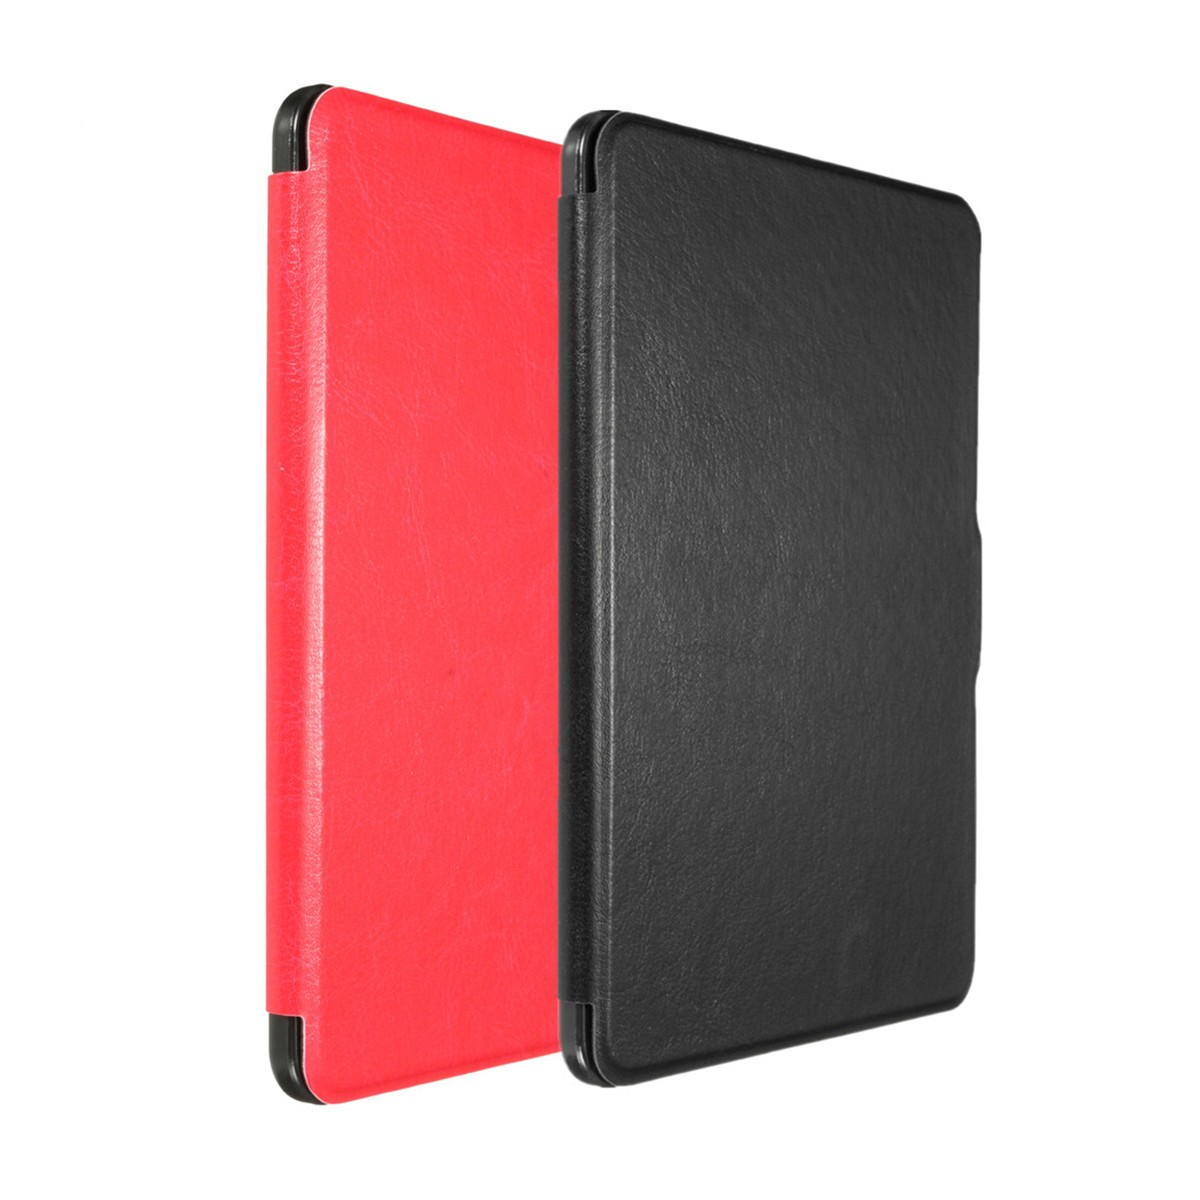 7 Inch Auto Sleep Wake Smart Leather PU Case Cover For Kindle Voyage